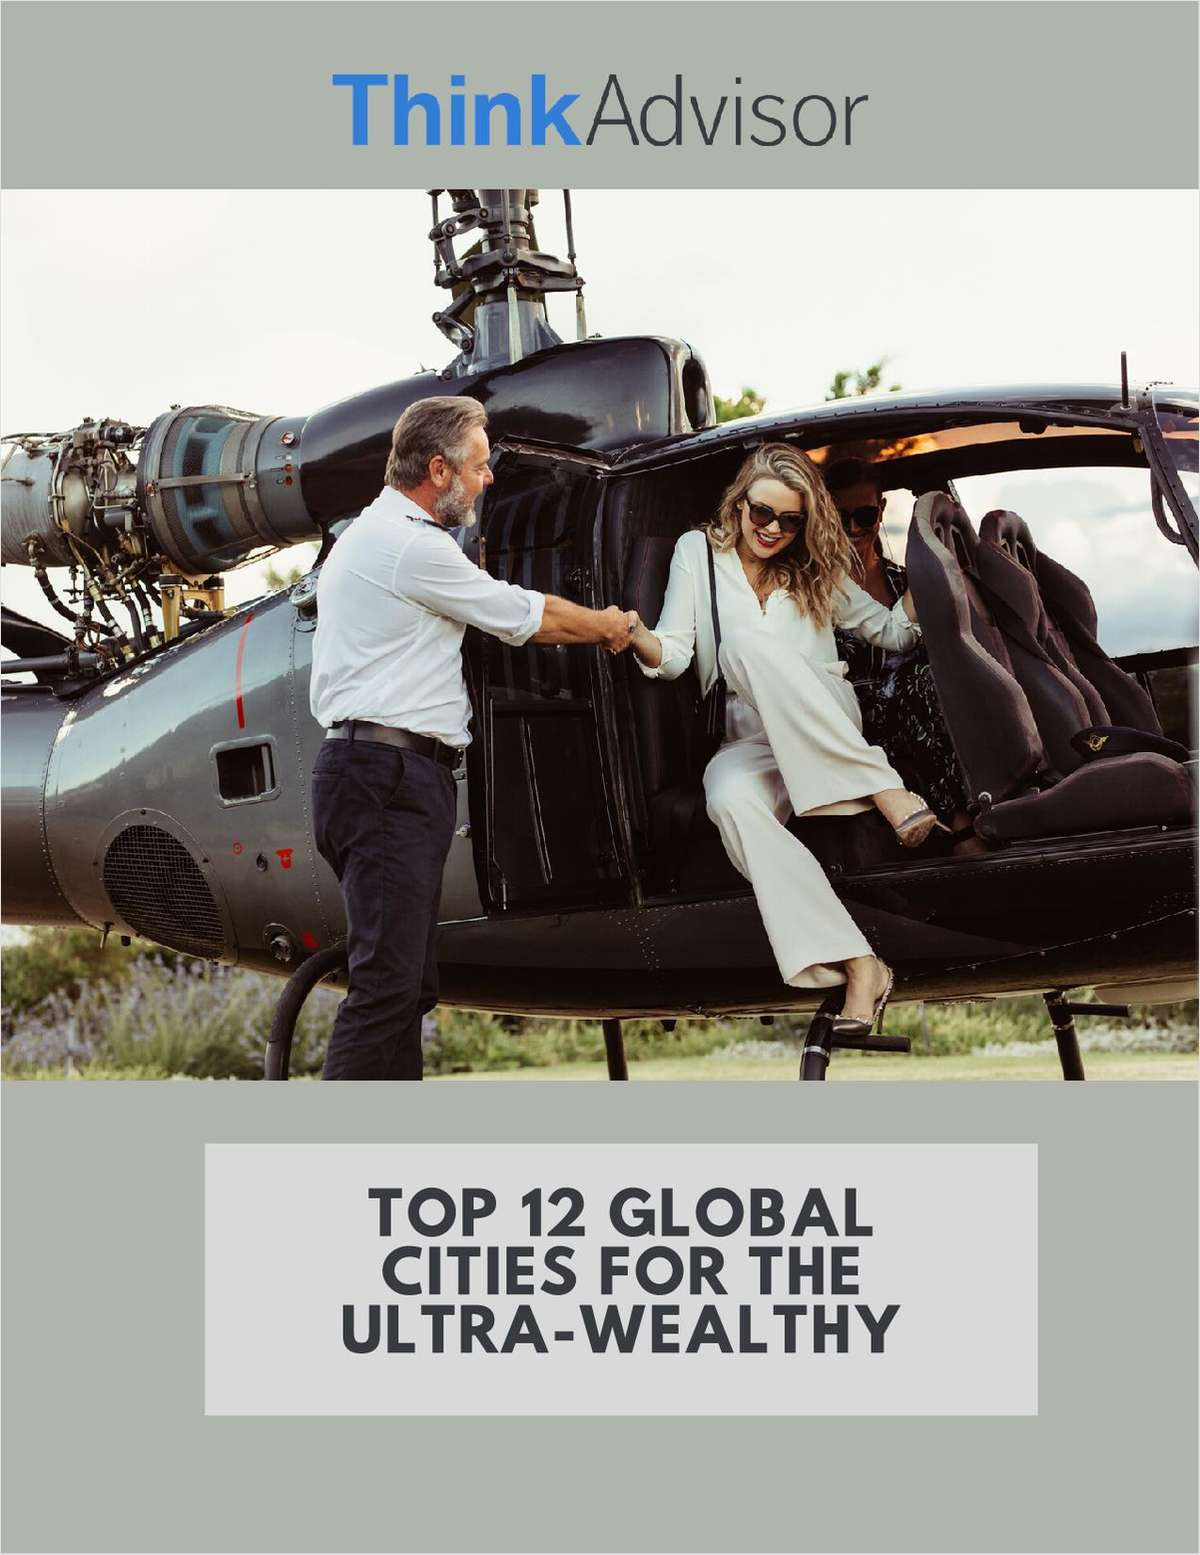 Top 12 Global Cities for the Ultra-Wealthy